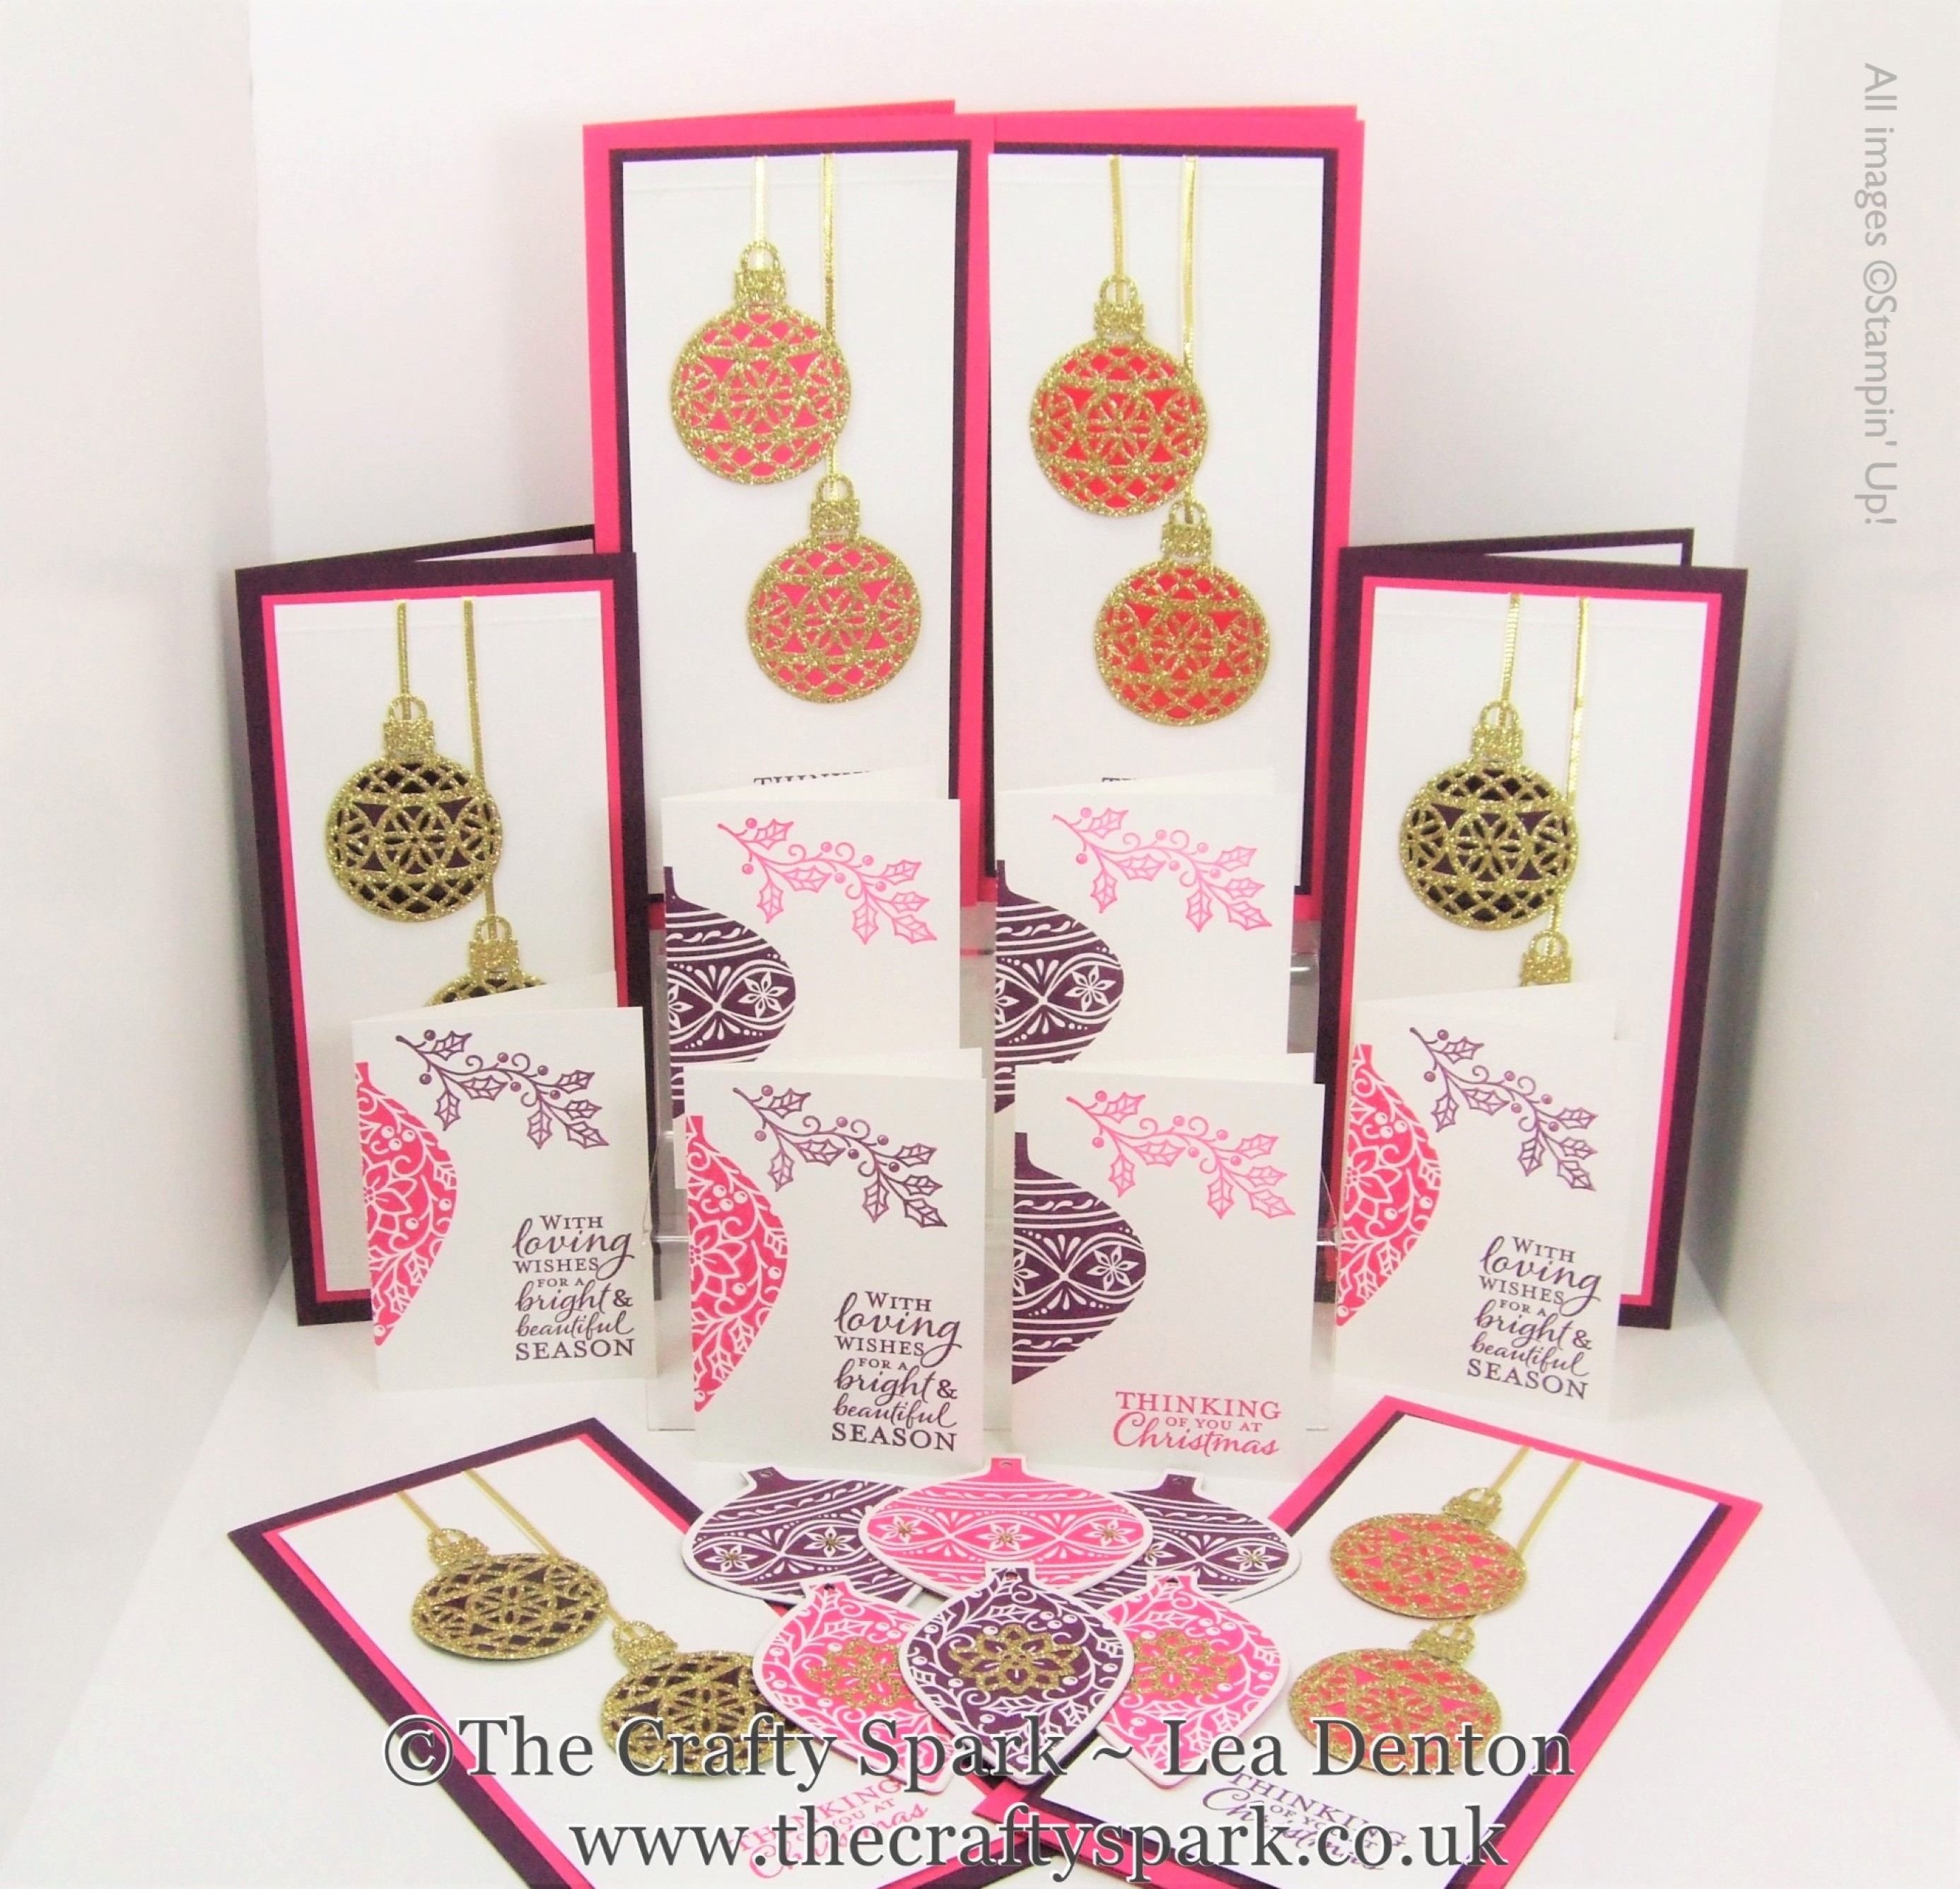 Embellished Ornaments Christmas Cards and Tags Gift Set Stampin Up UK Melon Mambo and Blackberry Bliss by Lea Denton, The Crafty Spark